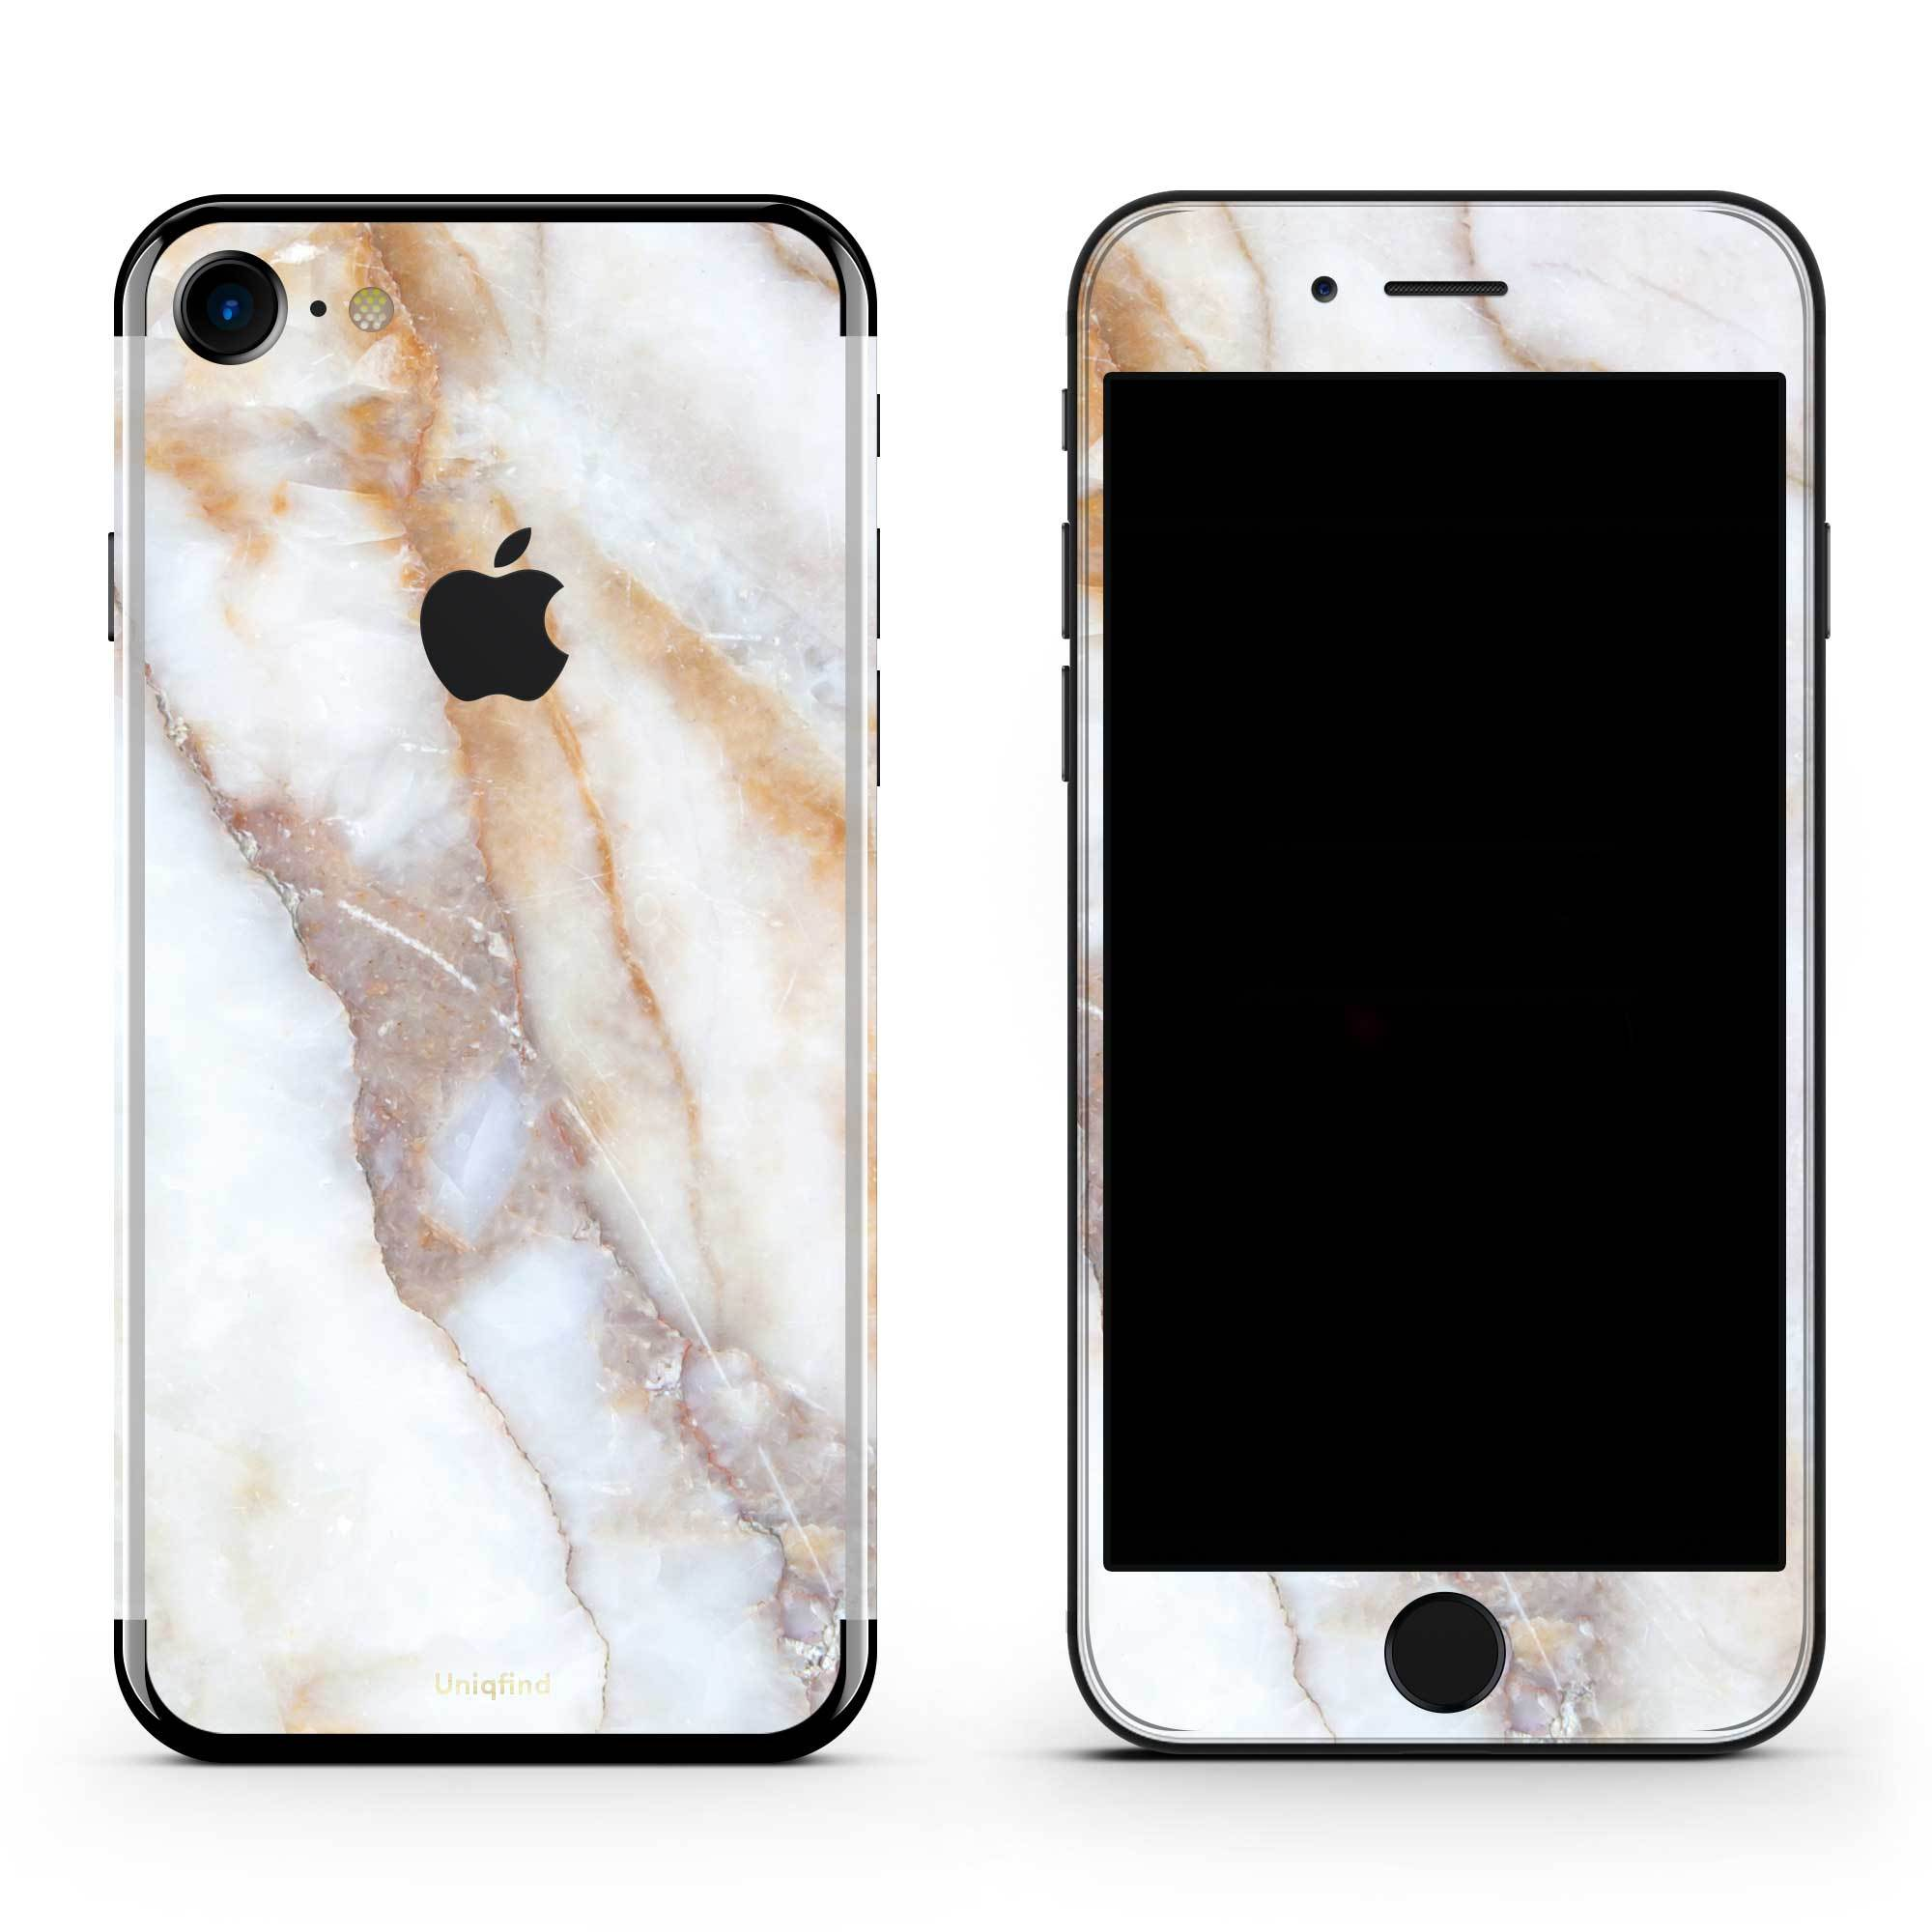 Vanilla Marble iPhone 7 Plus Skin + Case